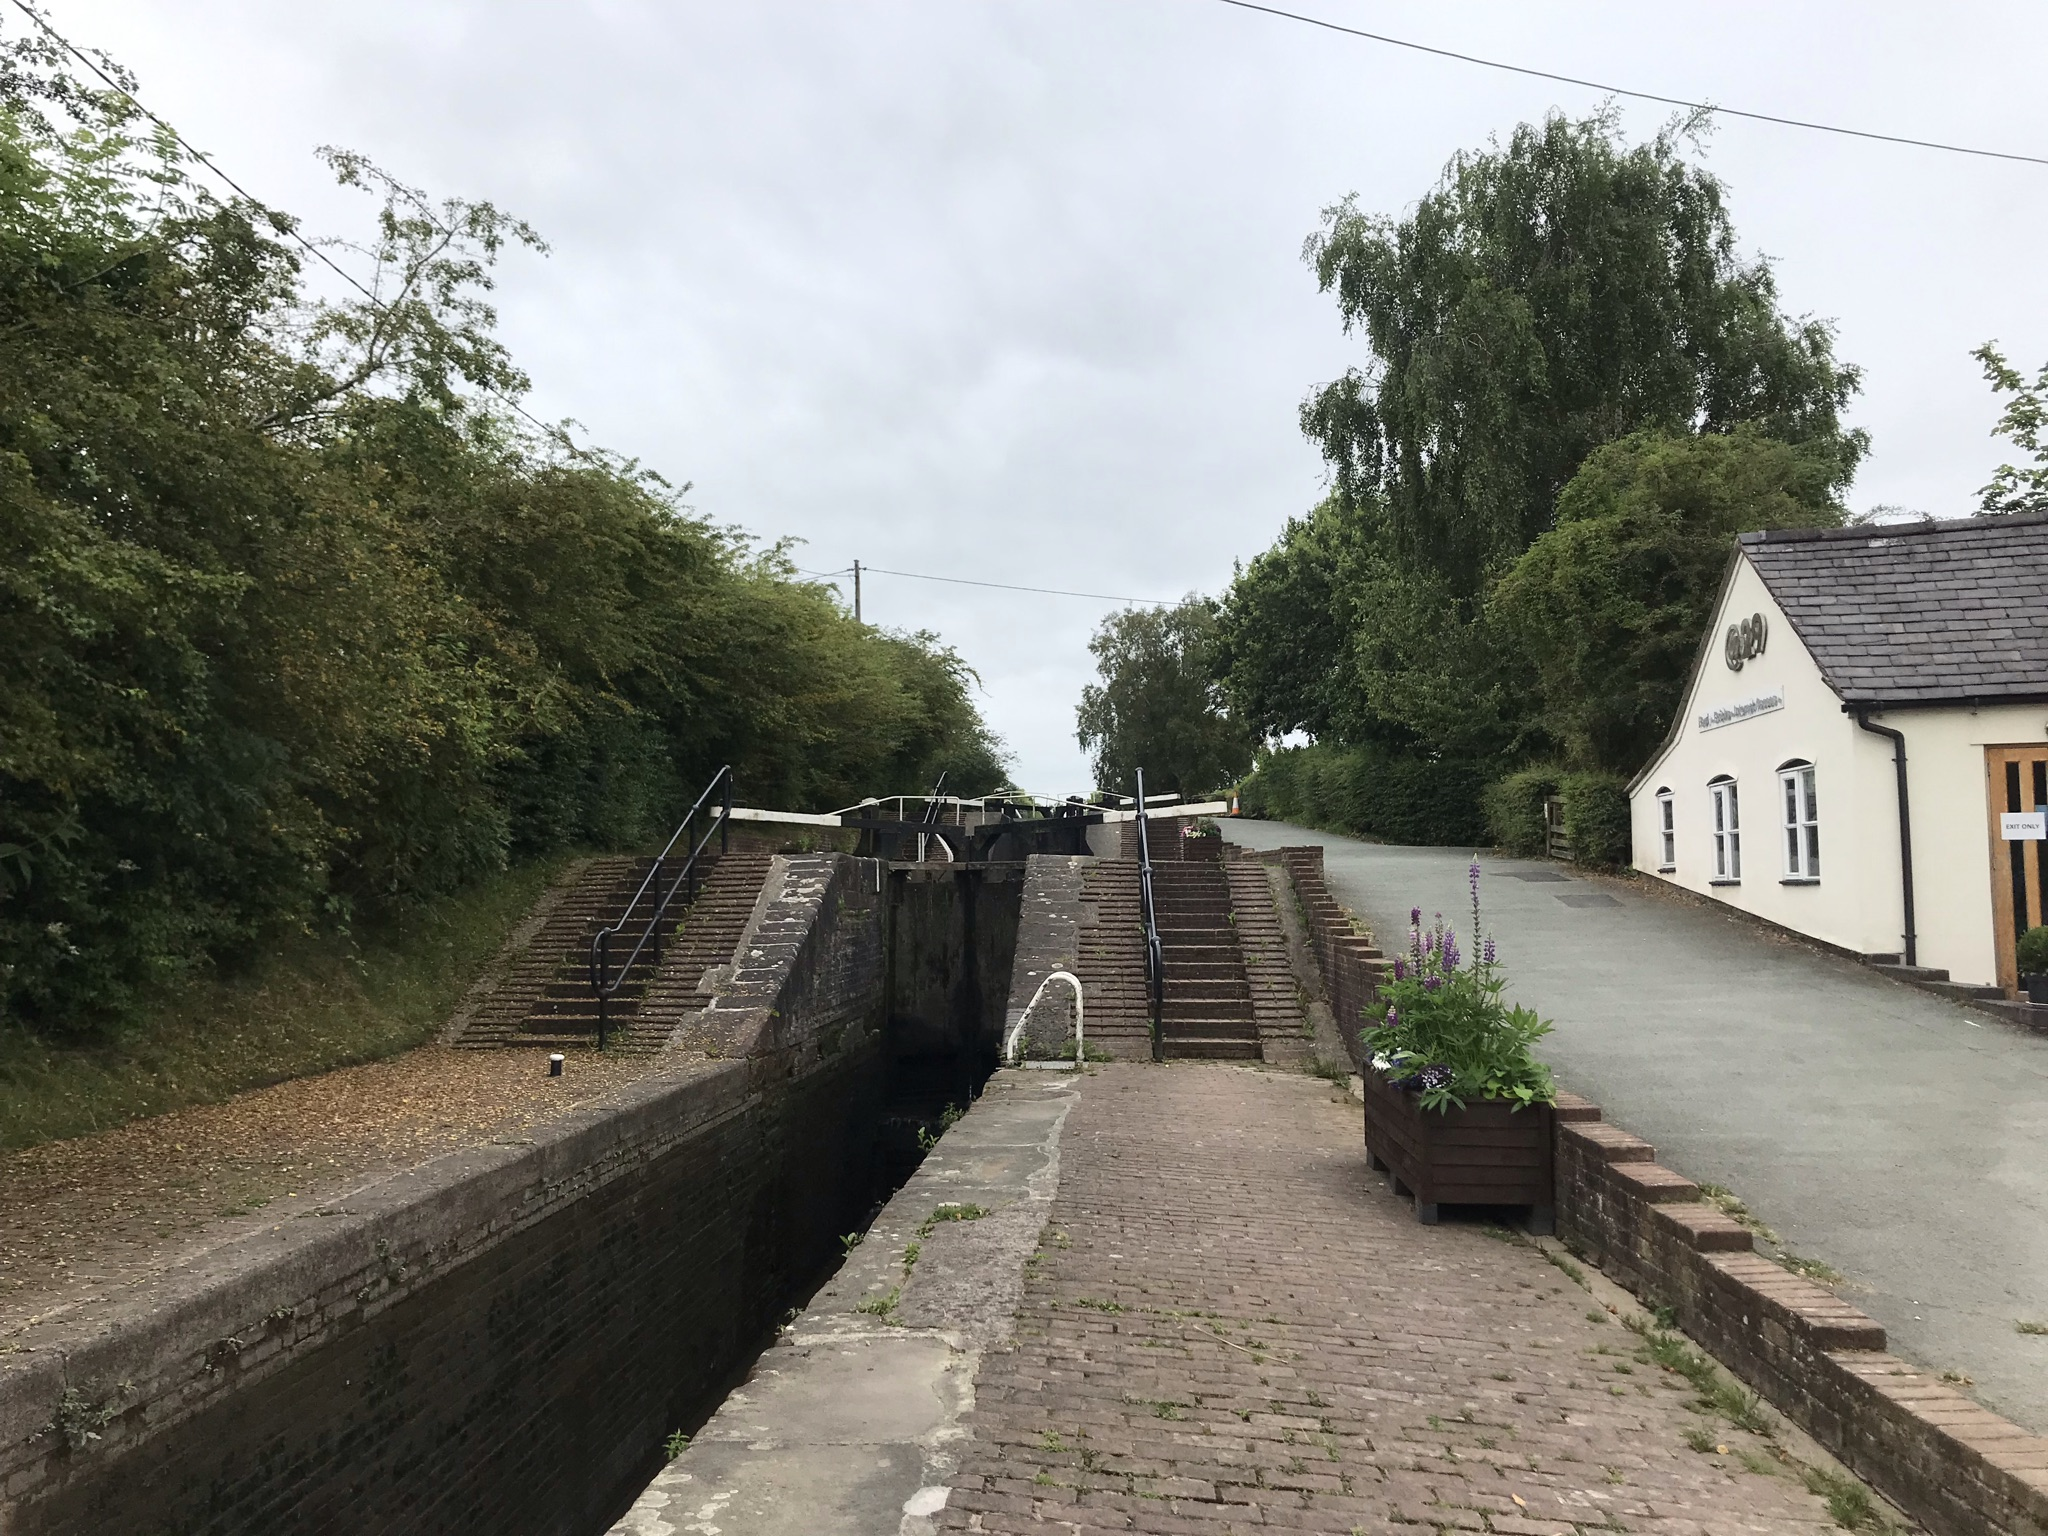 A lock with the water at the lowest level showing how deep it is.